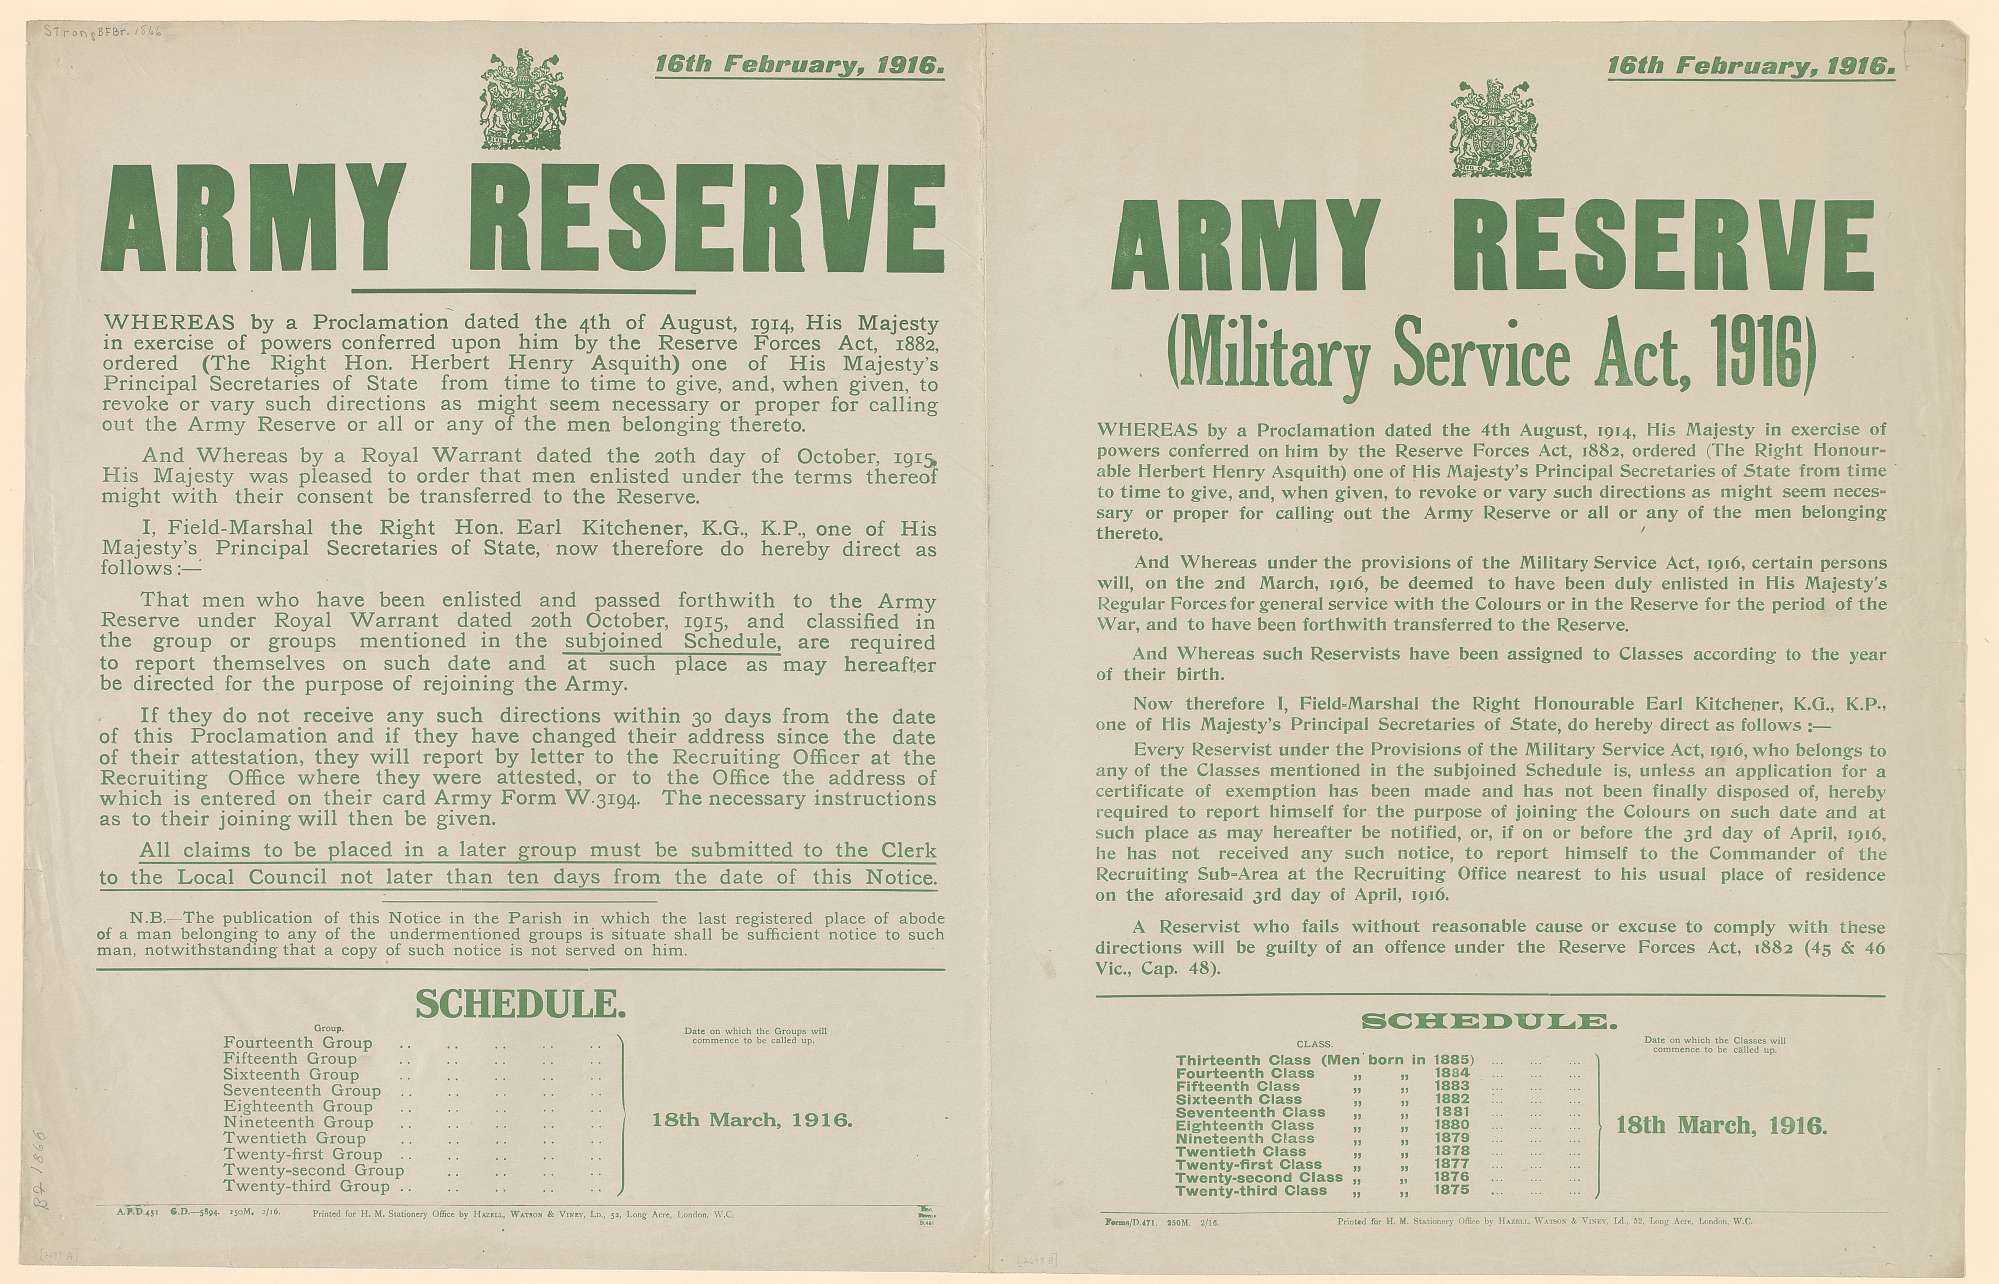 Army Reserve ... A: ... Required to Report Themselves on Such Date and at Such Place as May Hereafter Be Directed ... Schedule / Fourteen Group, ... B: Army Reserve (Military Service Act, 1916) ... Schedule / Thirteenth Class (Men Born in 1885)...